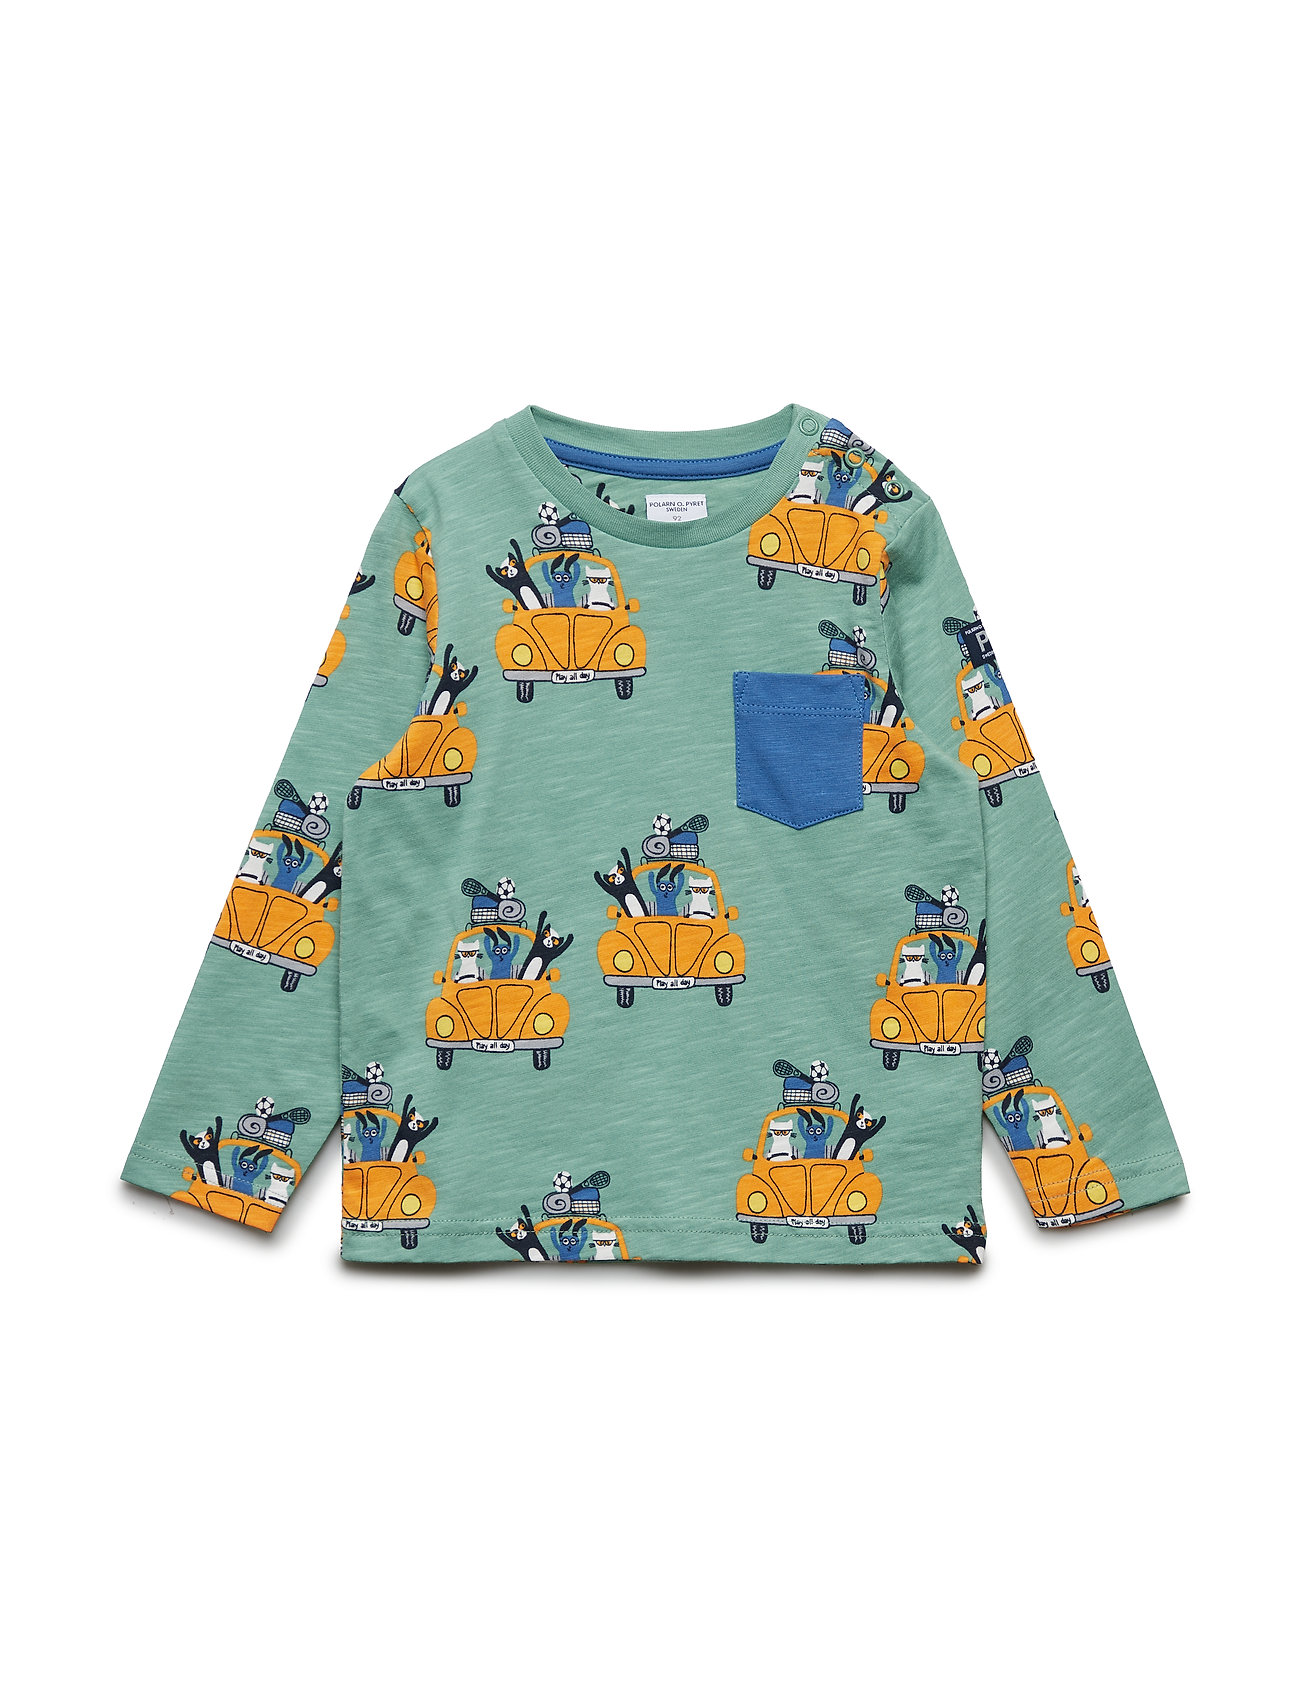 Polarn O. Pyret T-shirt with print Preschool